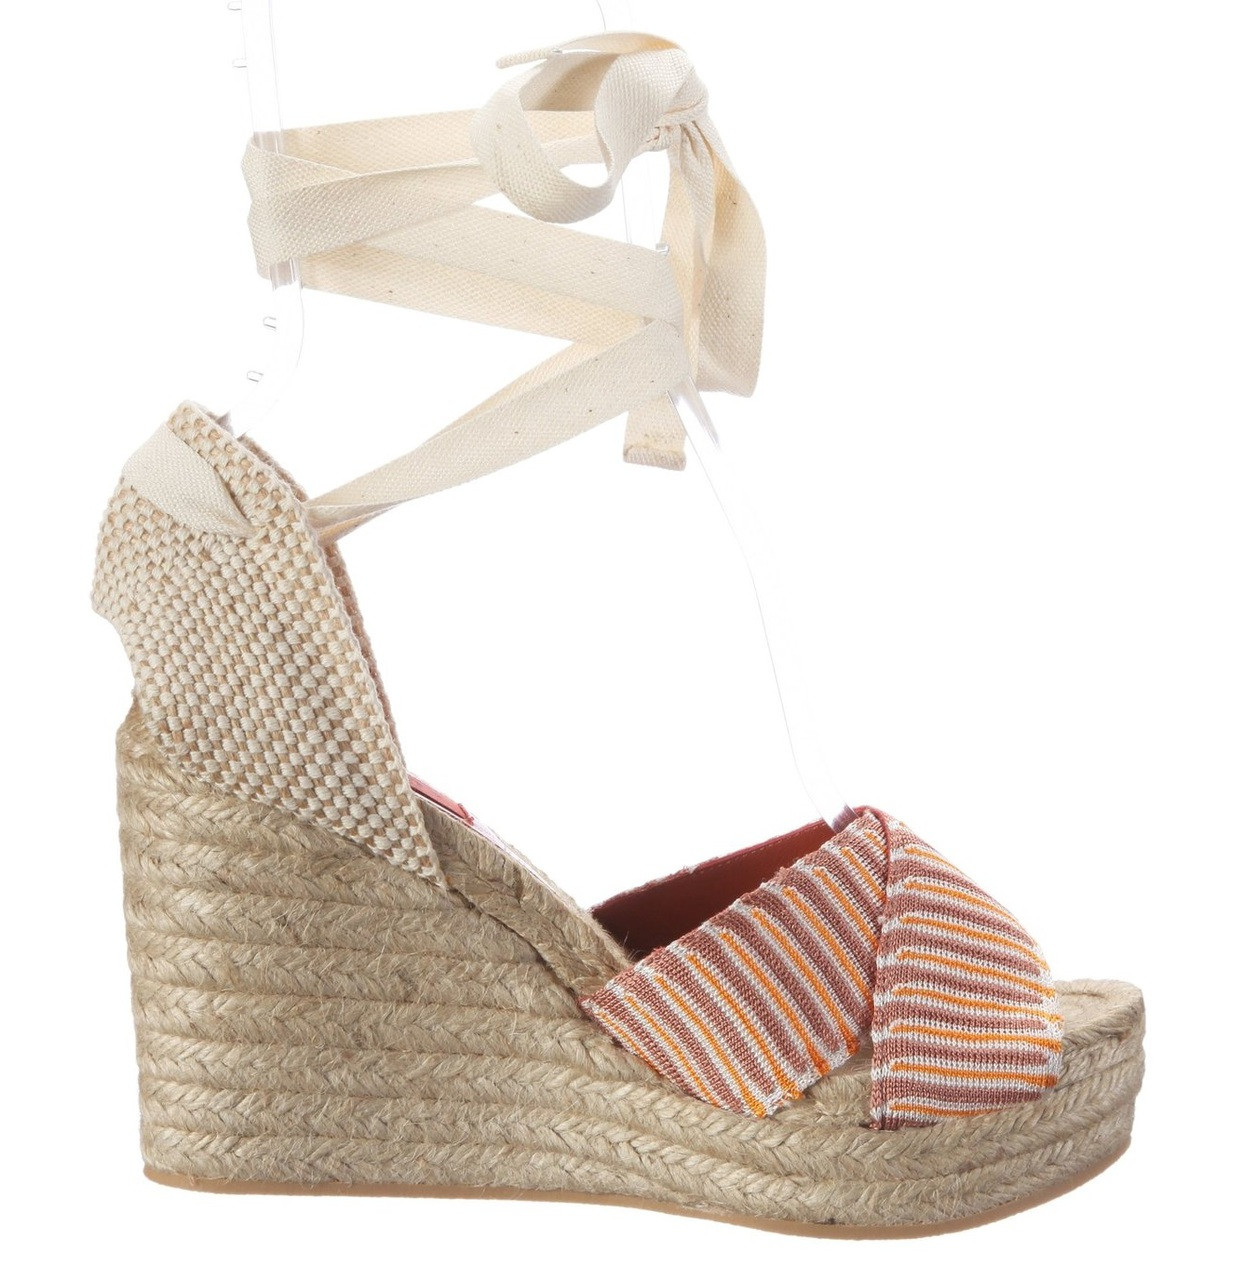 0f648ab8d39 Missoni Ankle Wrap Espadrille Wedge